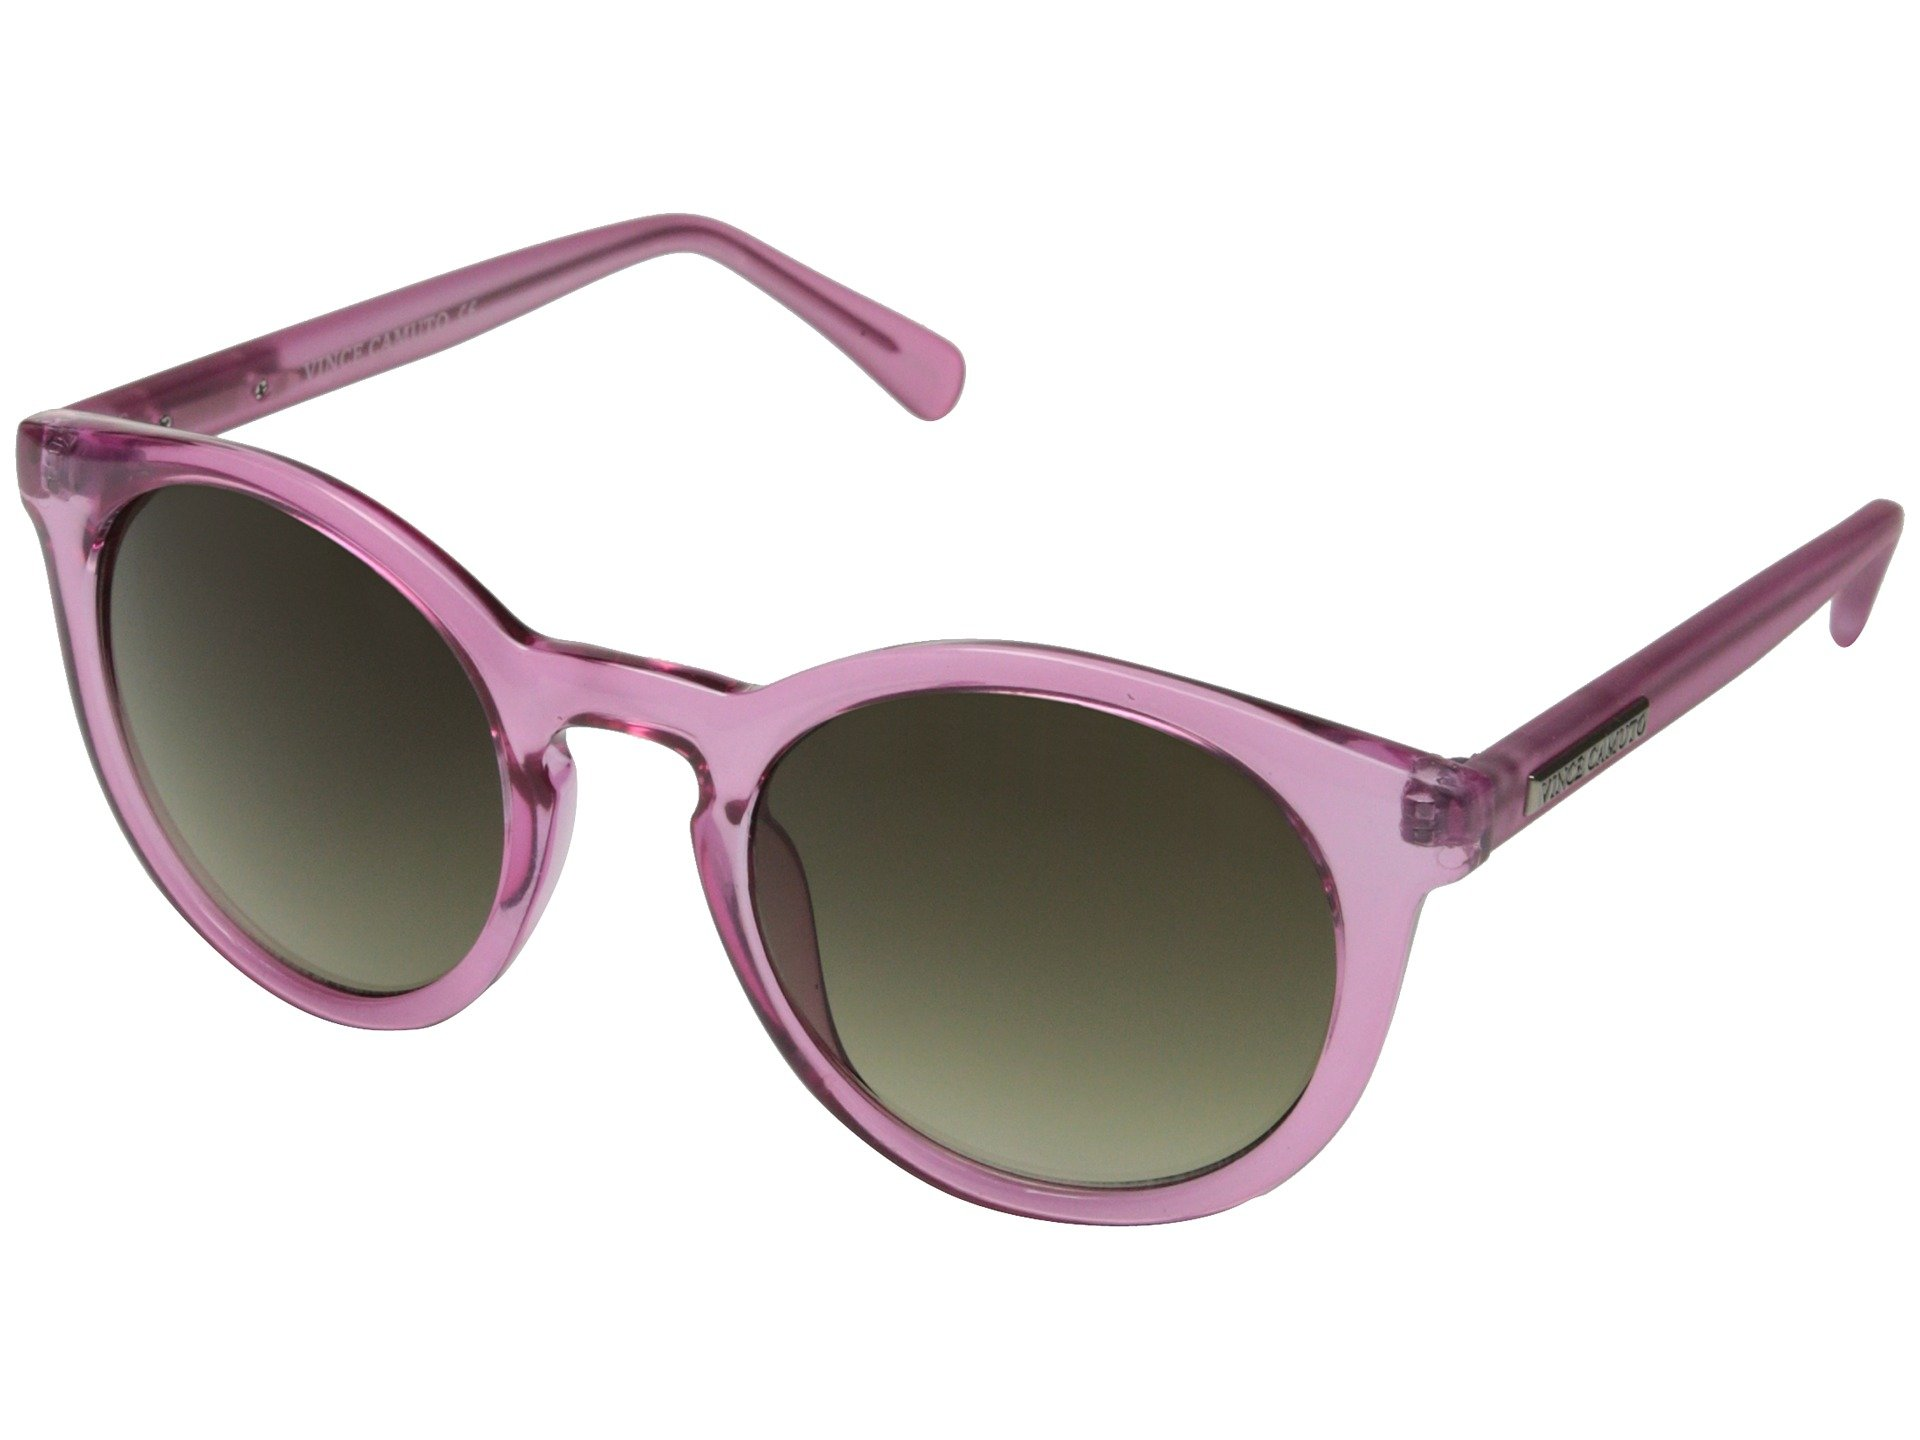 Gafas para Mujer Vince Camuto VC629  + Vince Camuto en VeoyCompro.net